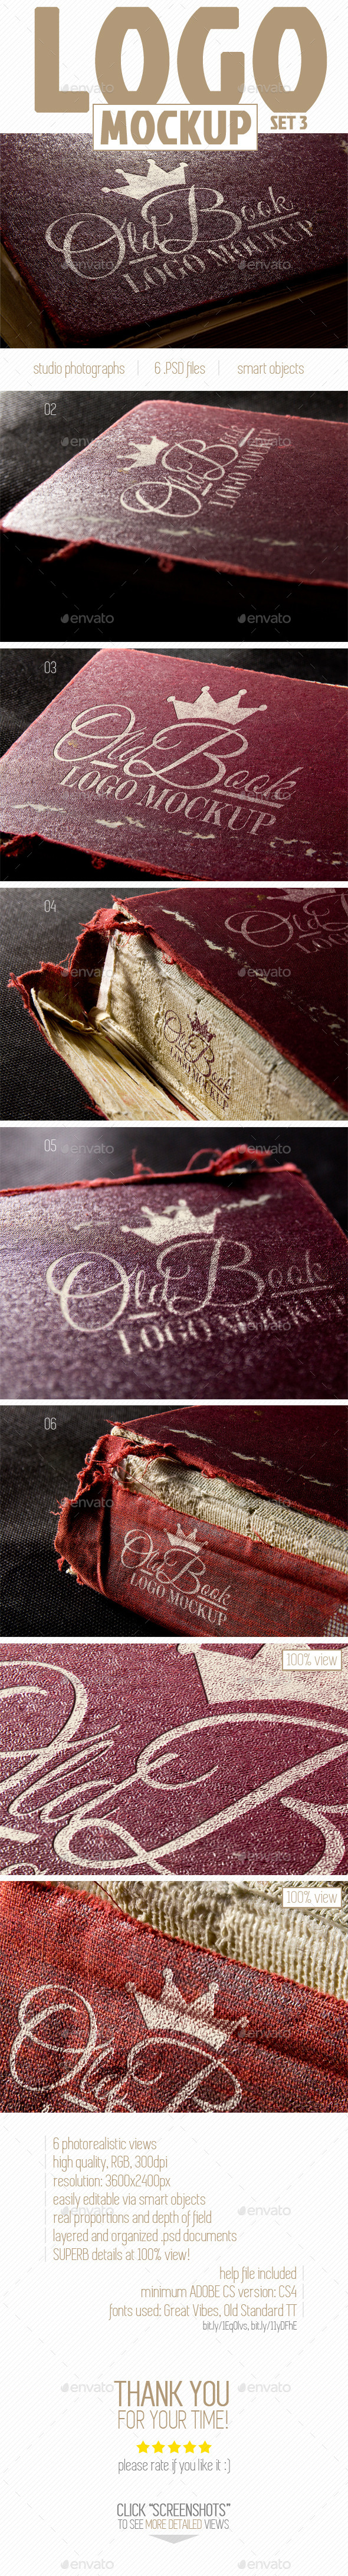 GraphicRiver Photorealistic Old Book Logo Mock-Up set 3 9805109